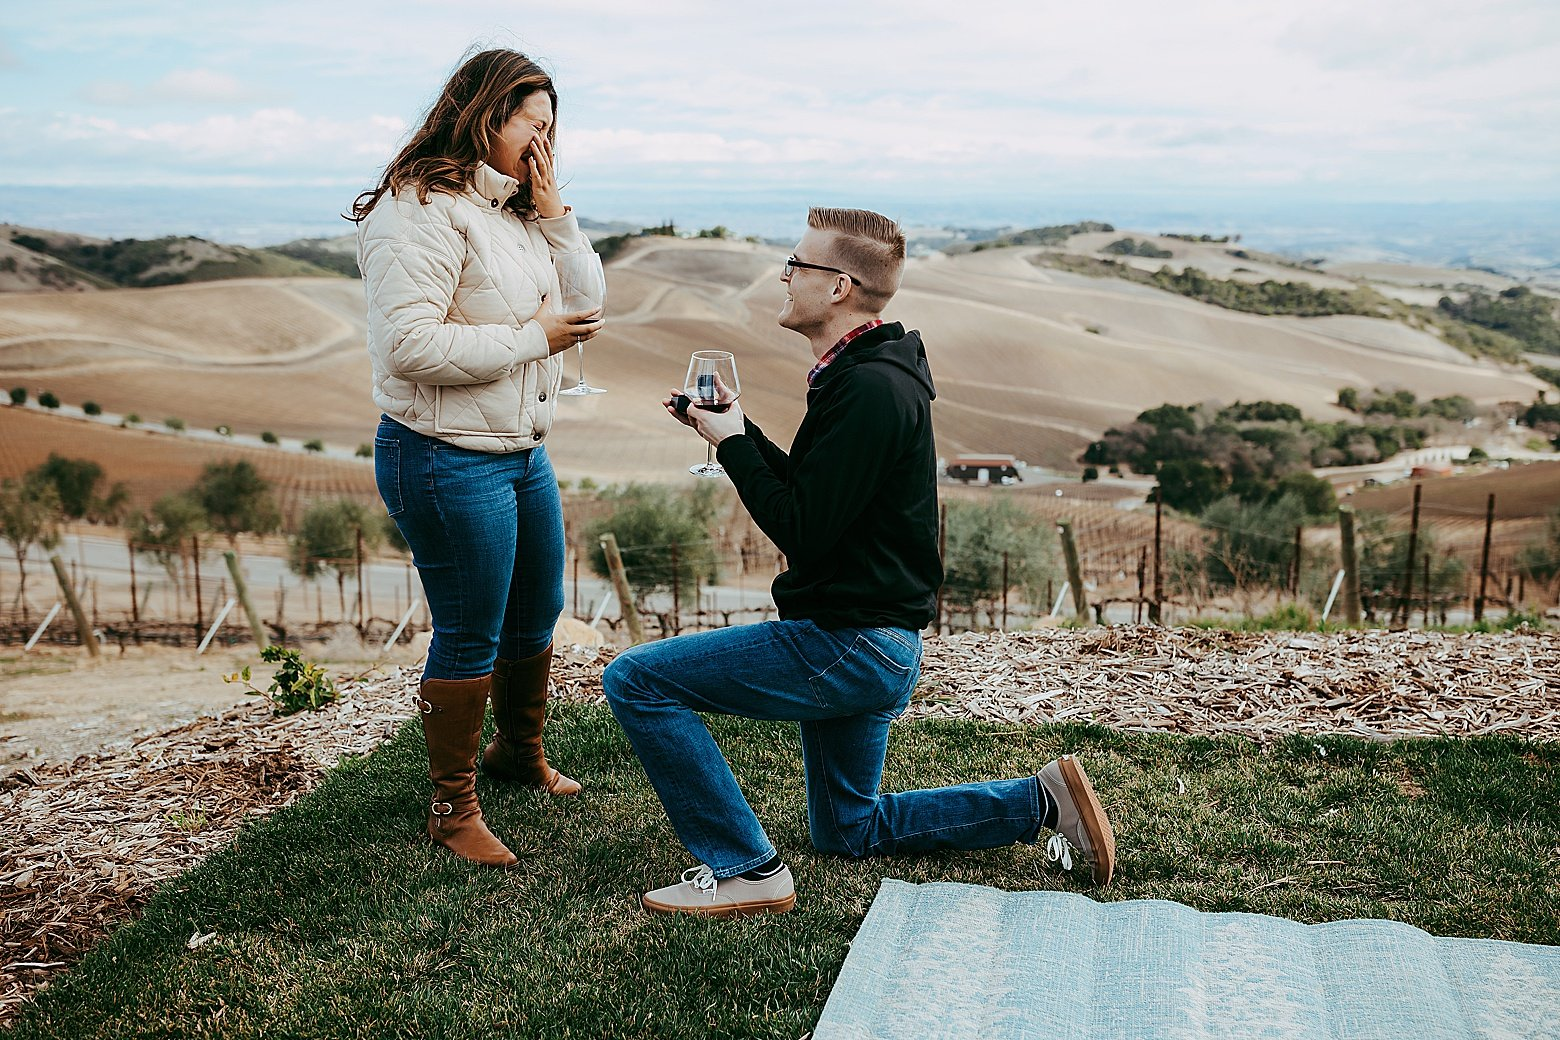 DAOU proposal photos